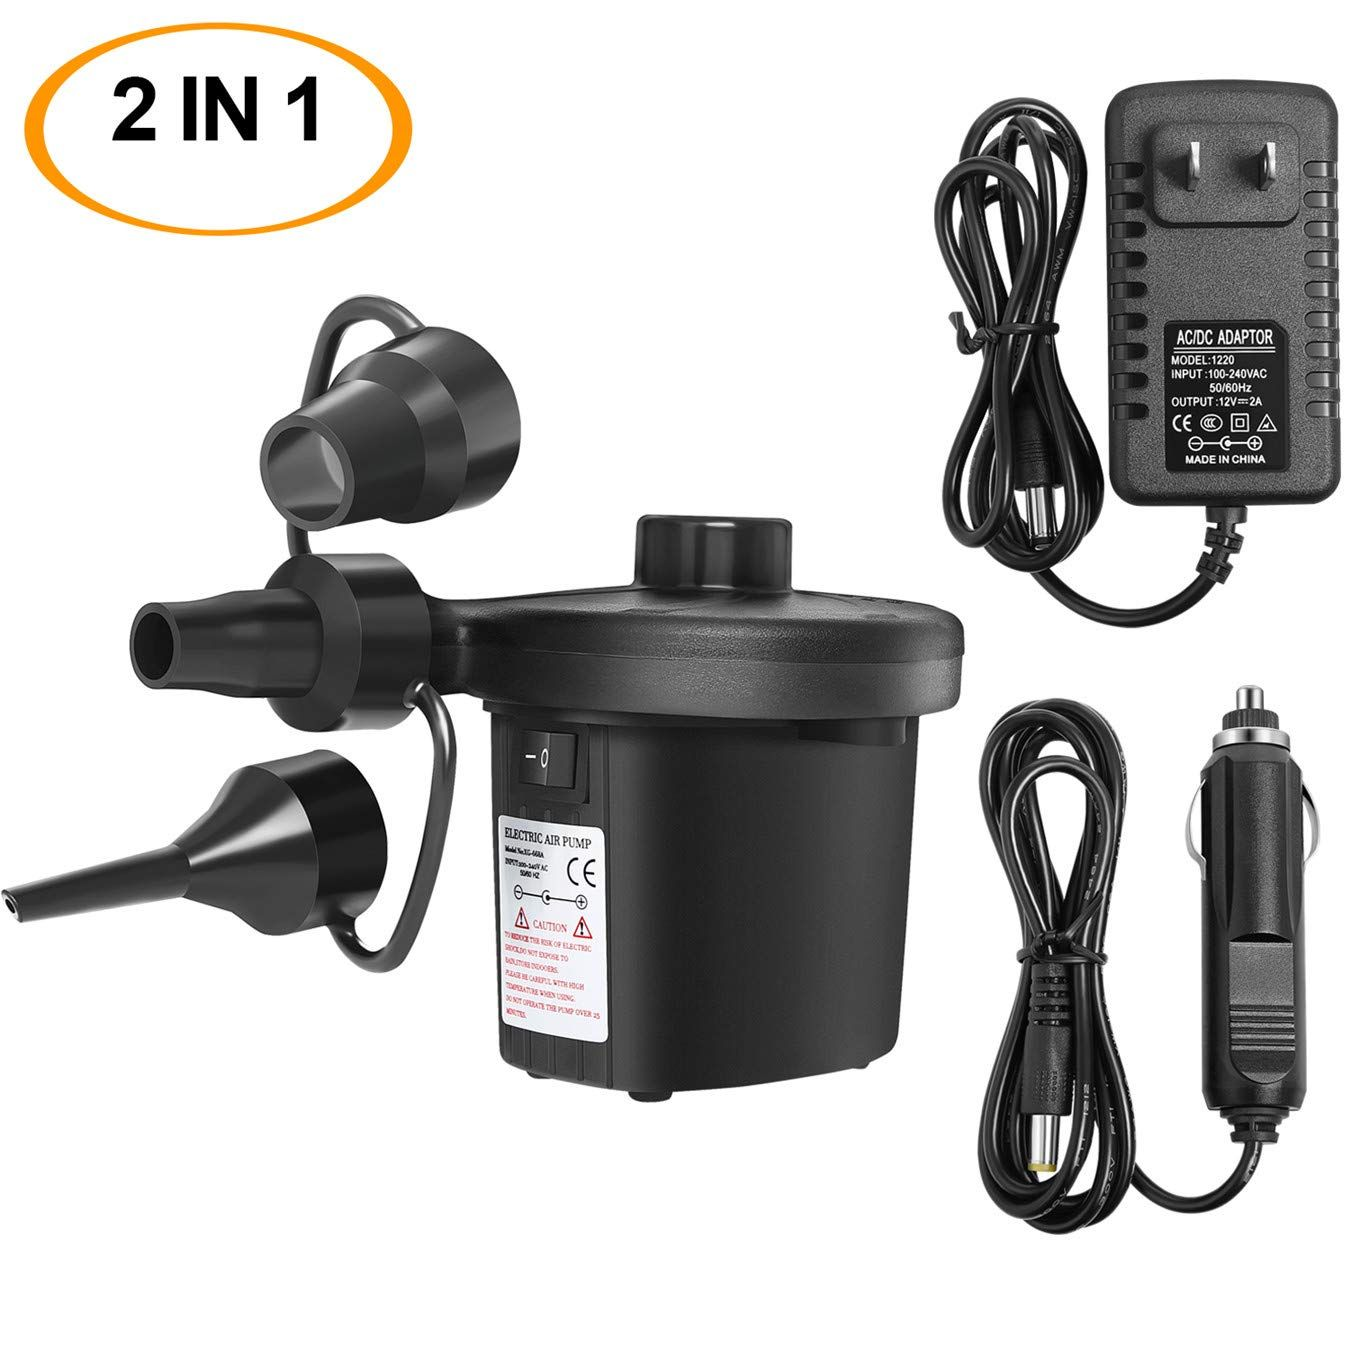 Cleverlife Electric Air Pump Portable Quick Fill 100v Ac 12v Dc Air Pump With 3 Nozzles Great Inflator Deflator Pumps For Out In 2020 Air Mattress Air Pump Inflators